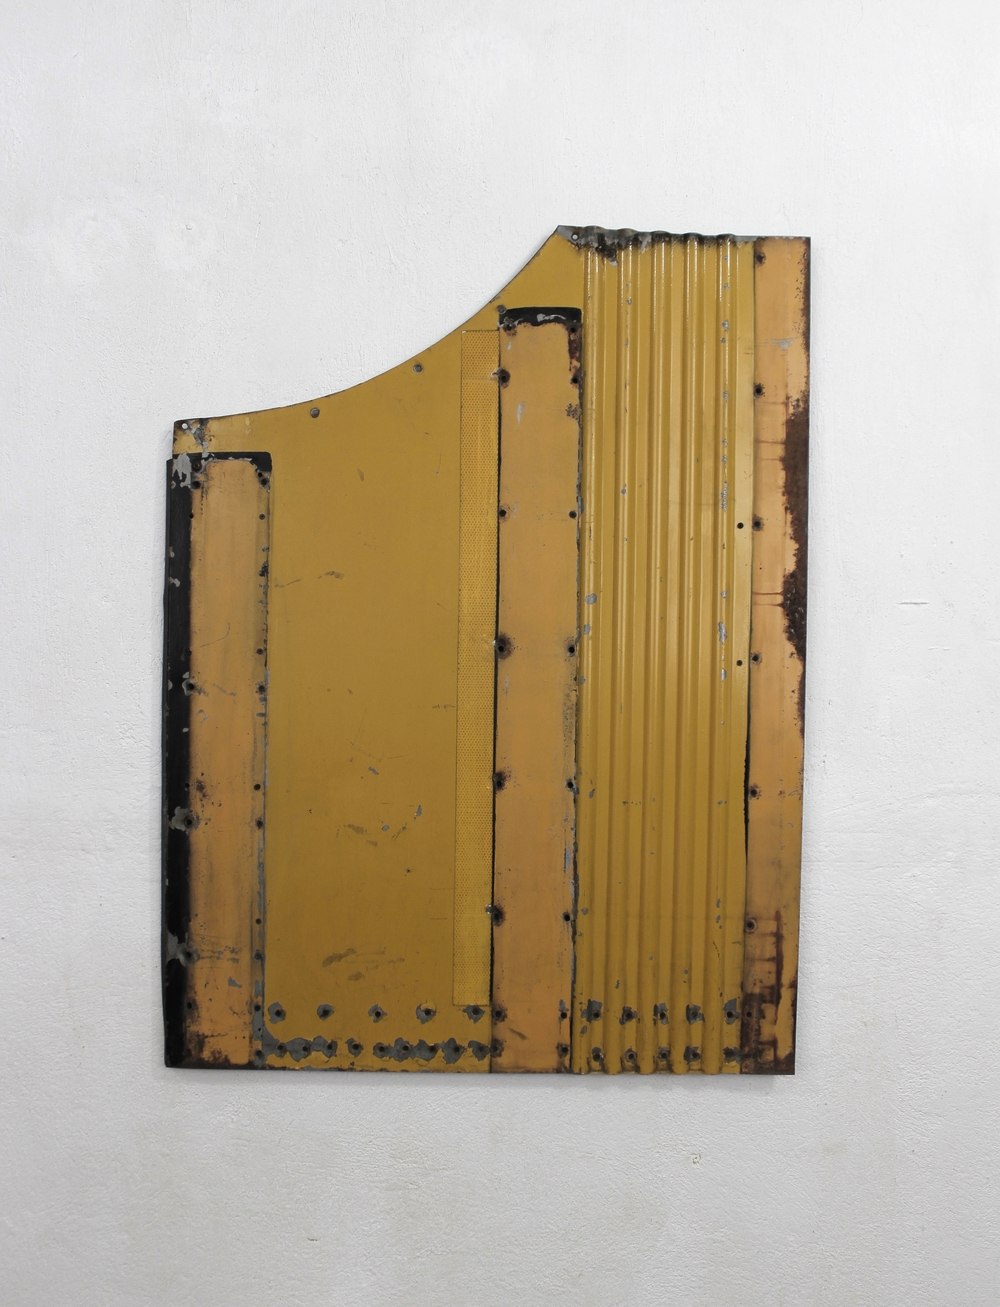 Geometric Relief No. 5   2014  Found rusted urban bus external panel, automotive paint, polyvinyl and acryloid.   115 x 87 x 3 cm   Photo credit: Diego Sagastume